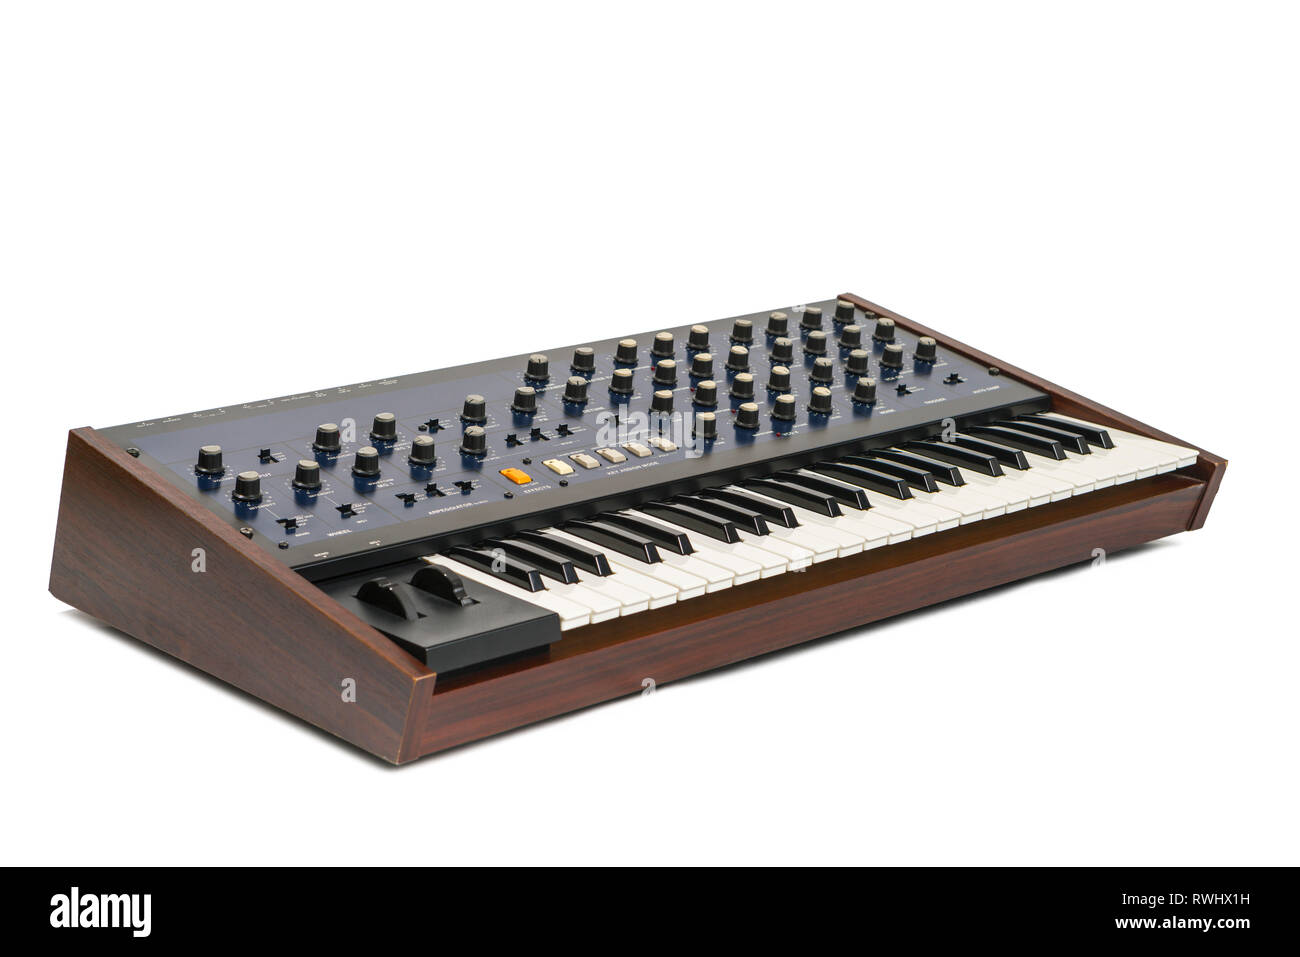 Korg Monopoly vintage analog synthesizer from 1981 and white studio background. Logo and branding removed. - Stock Image